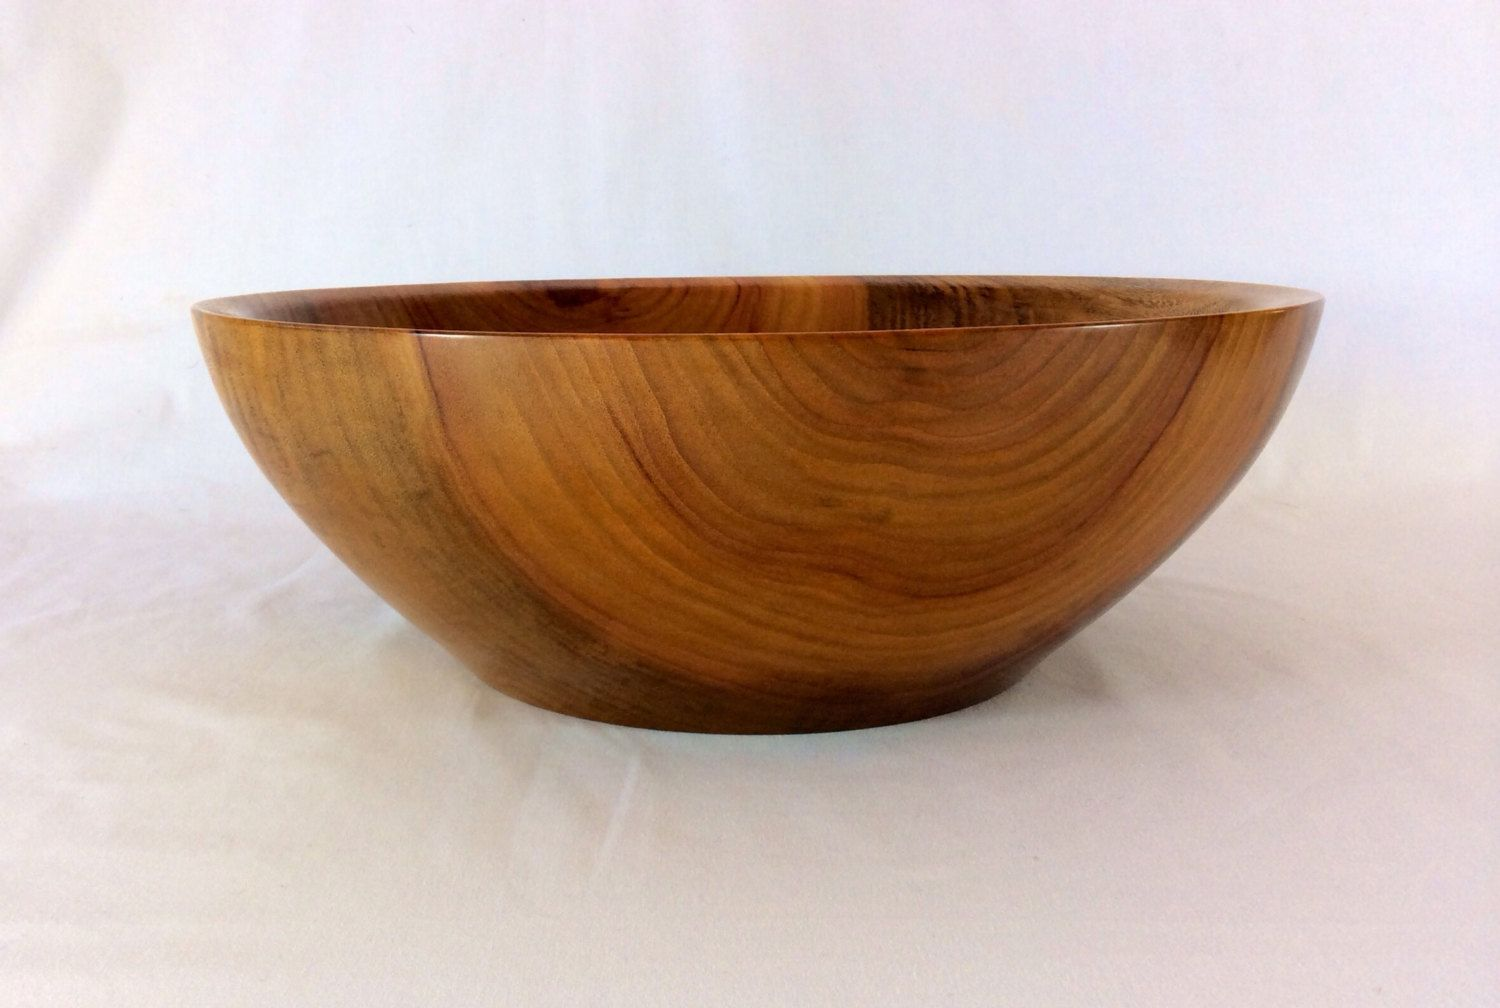 Extra Large Wooden Bowl Stunning Salad Or Fruit Food Safe Wood Perfect Gift Unusual Present In Any Decor By Broluk On Etsy